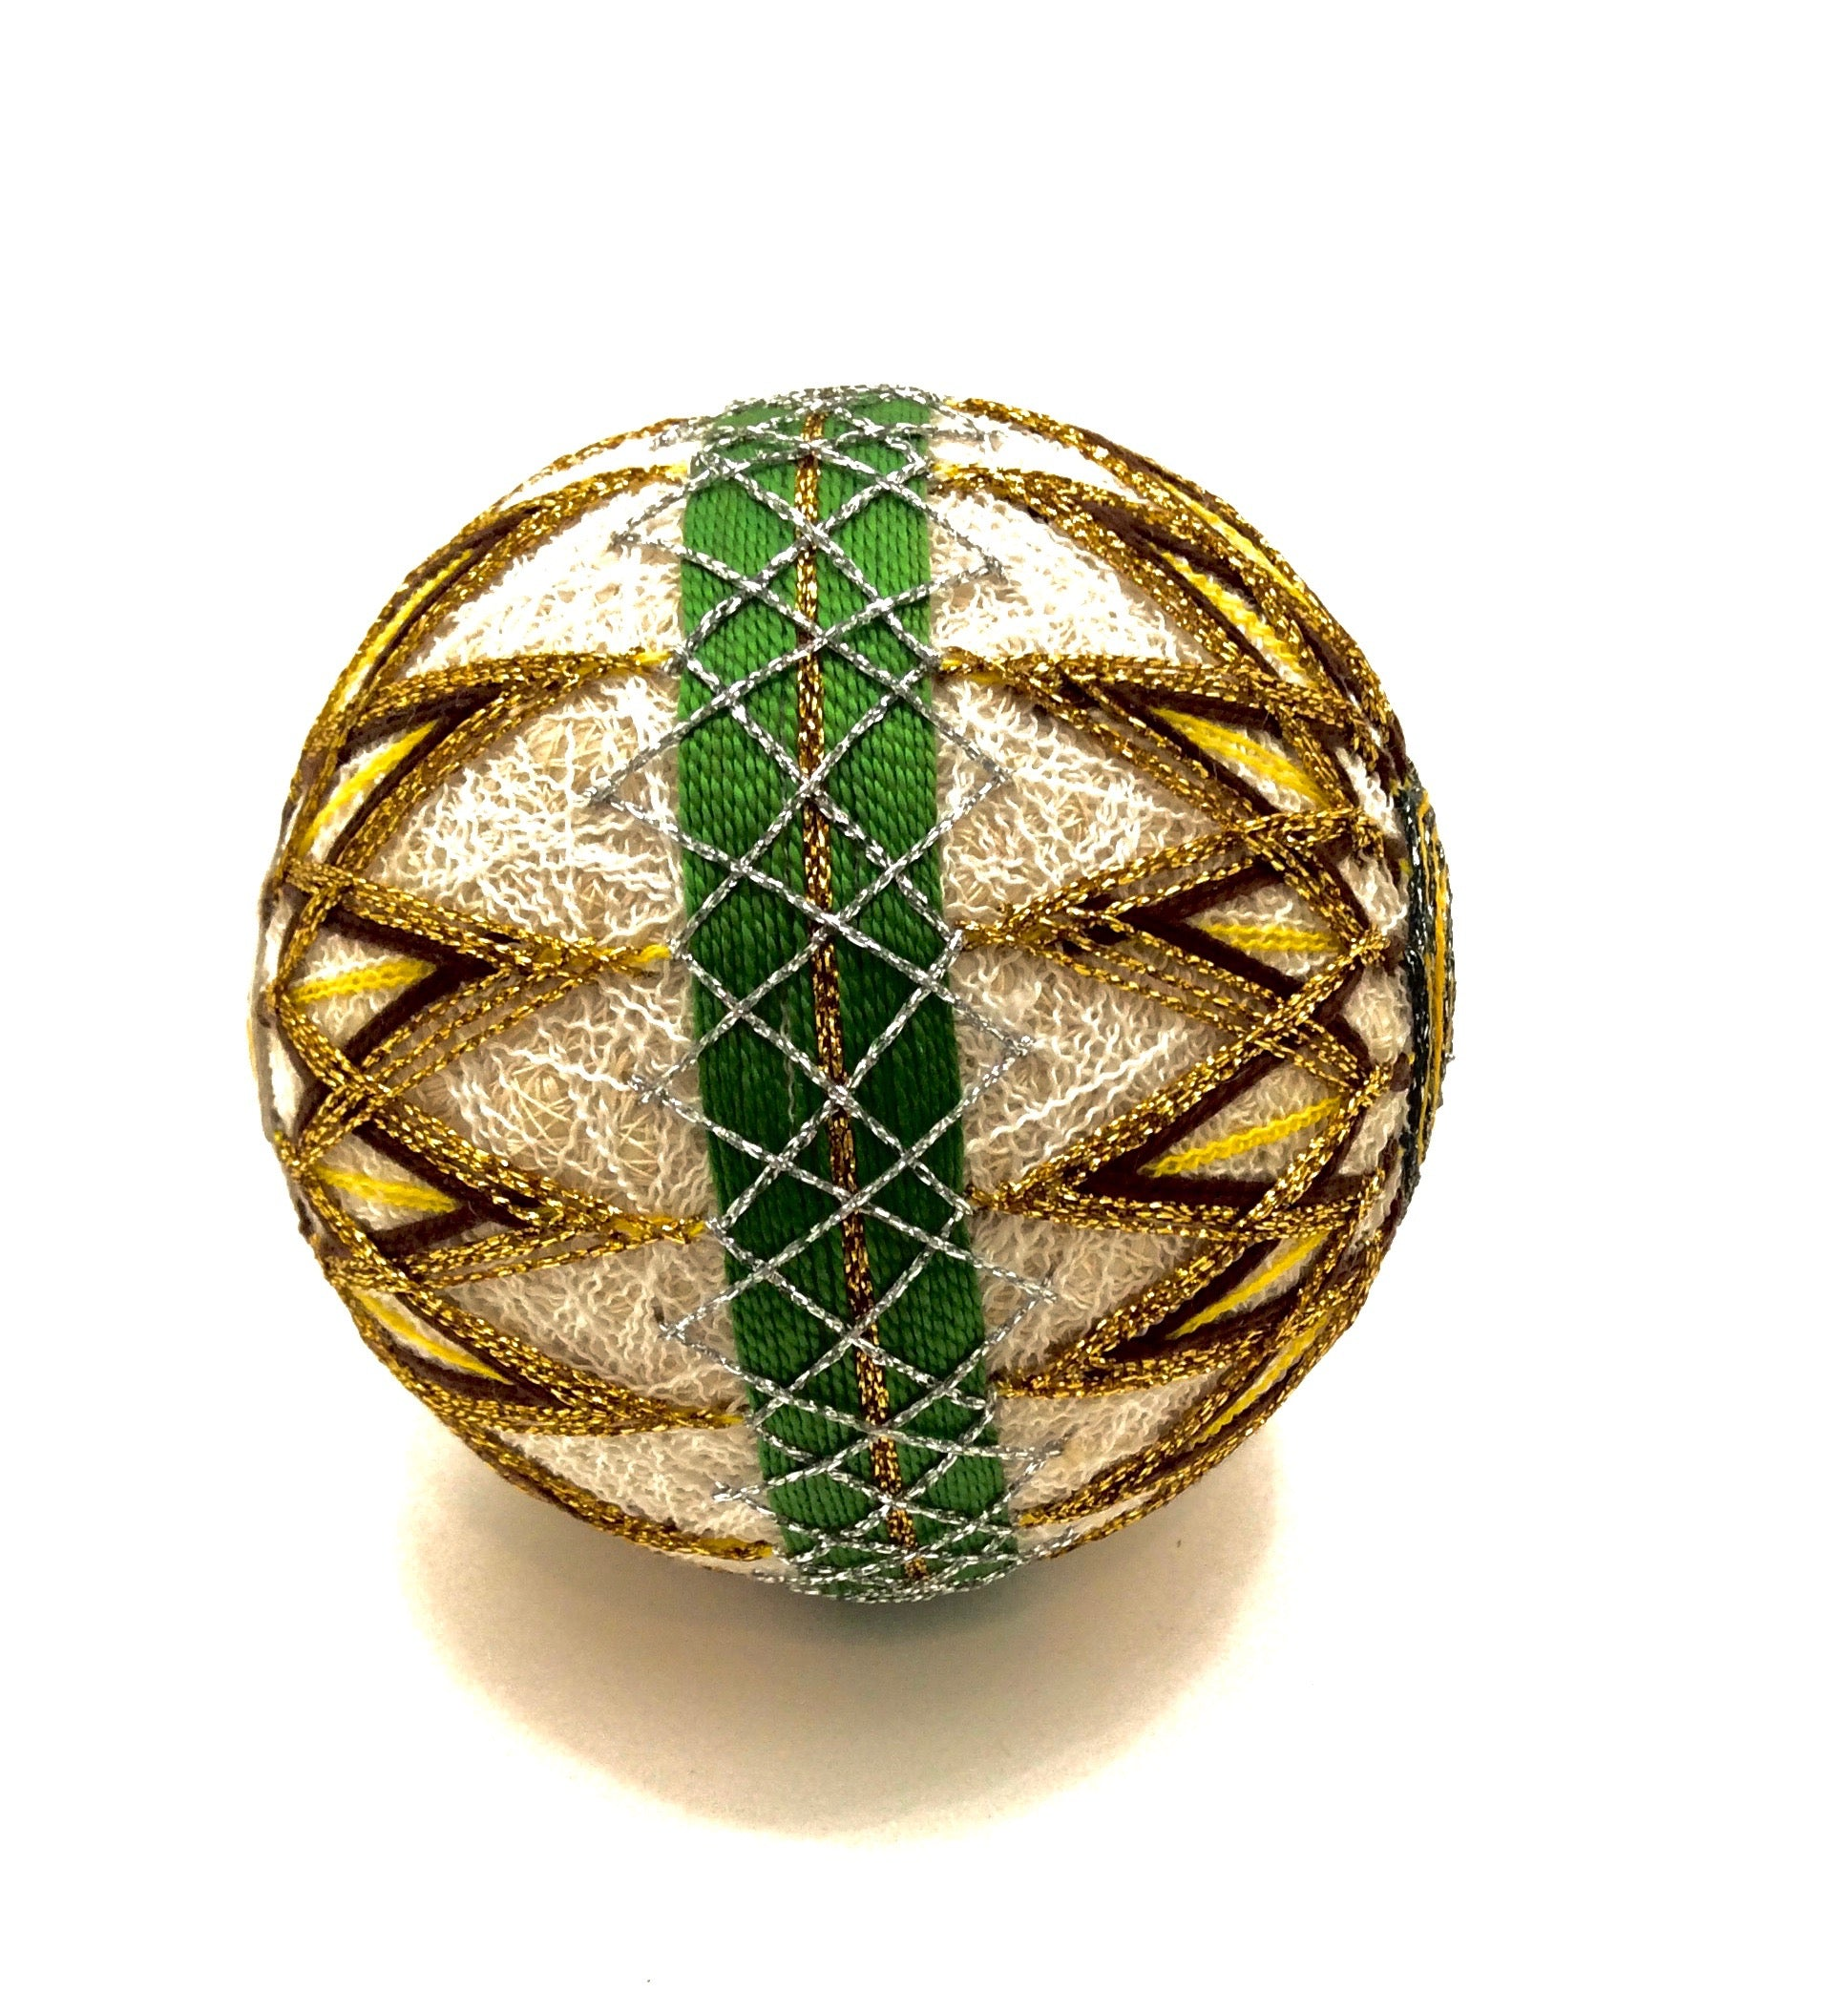 Vintage Japanese Folk Art - Embroidered Temari Ball | Ball with Kiku (Chrysanthemum) Motif